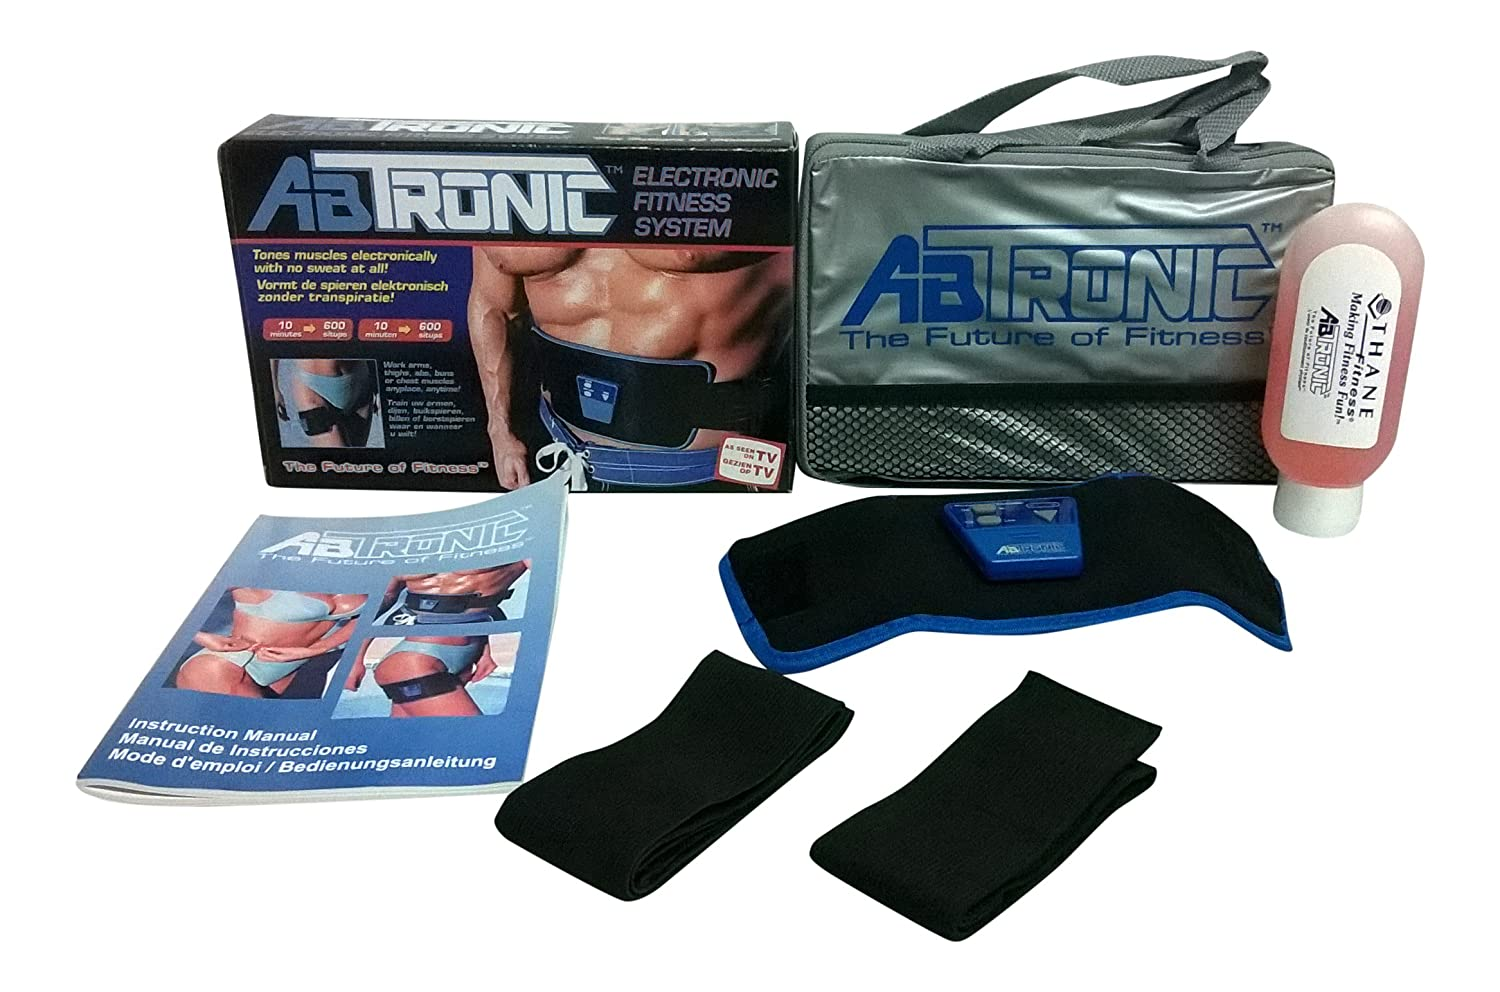 abtronic muscle fitness system ems fitness belt as seen on tvabtronic muscle fitness system ems fitness belt as seen on tv amazon co uk sports \u0026 outdoors